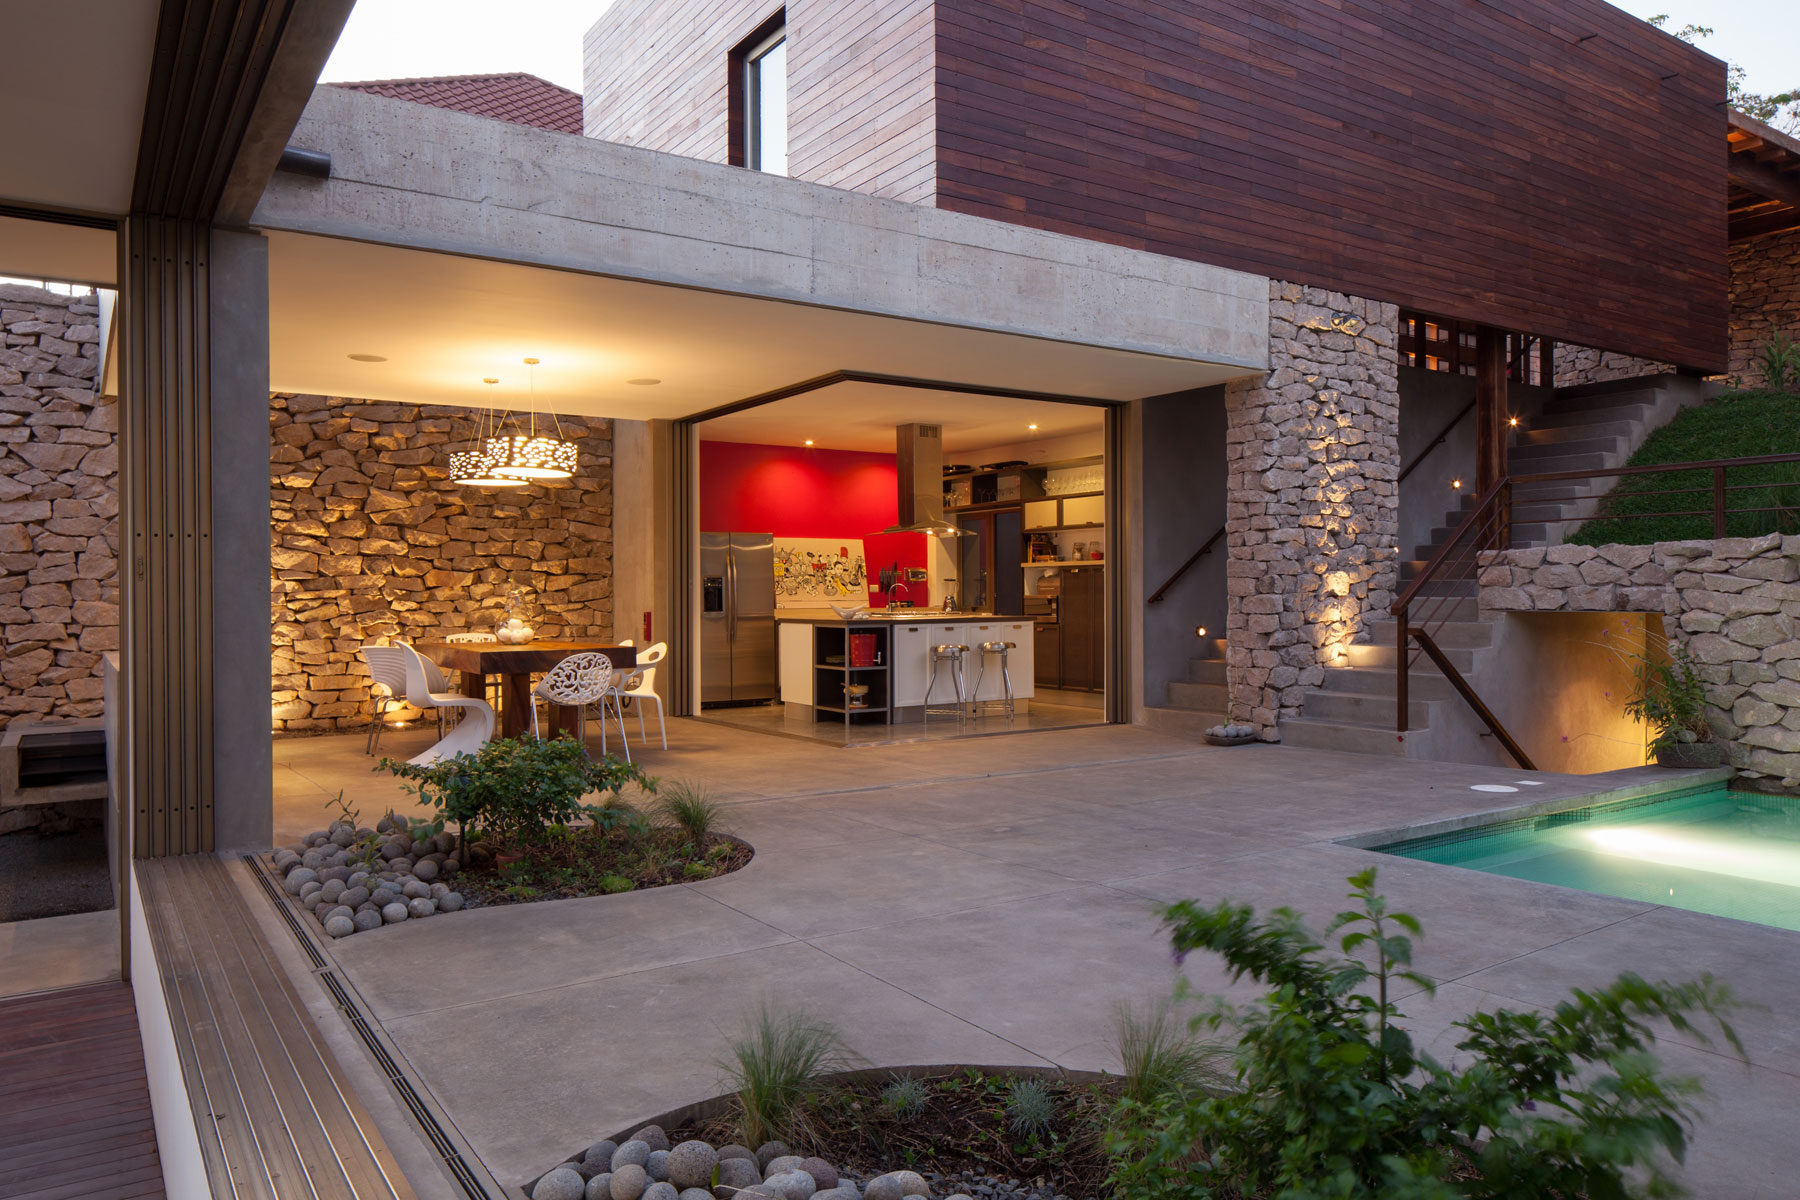 Modern, Rustic Sensation Of Garden House in El Salvador by Cincopatasalgato-15